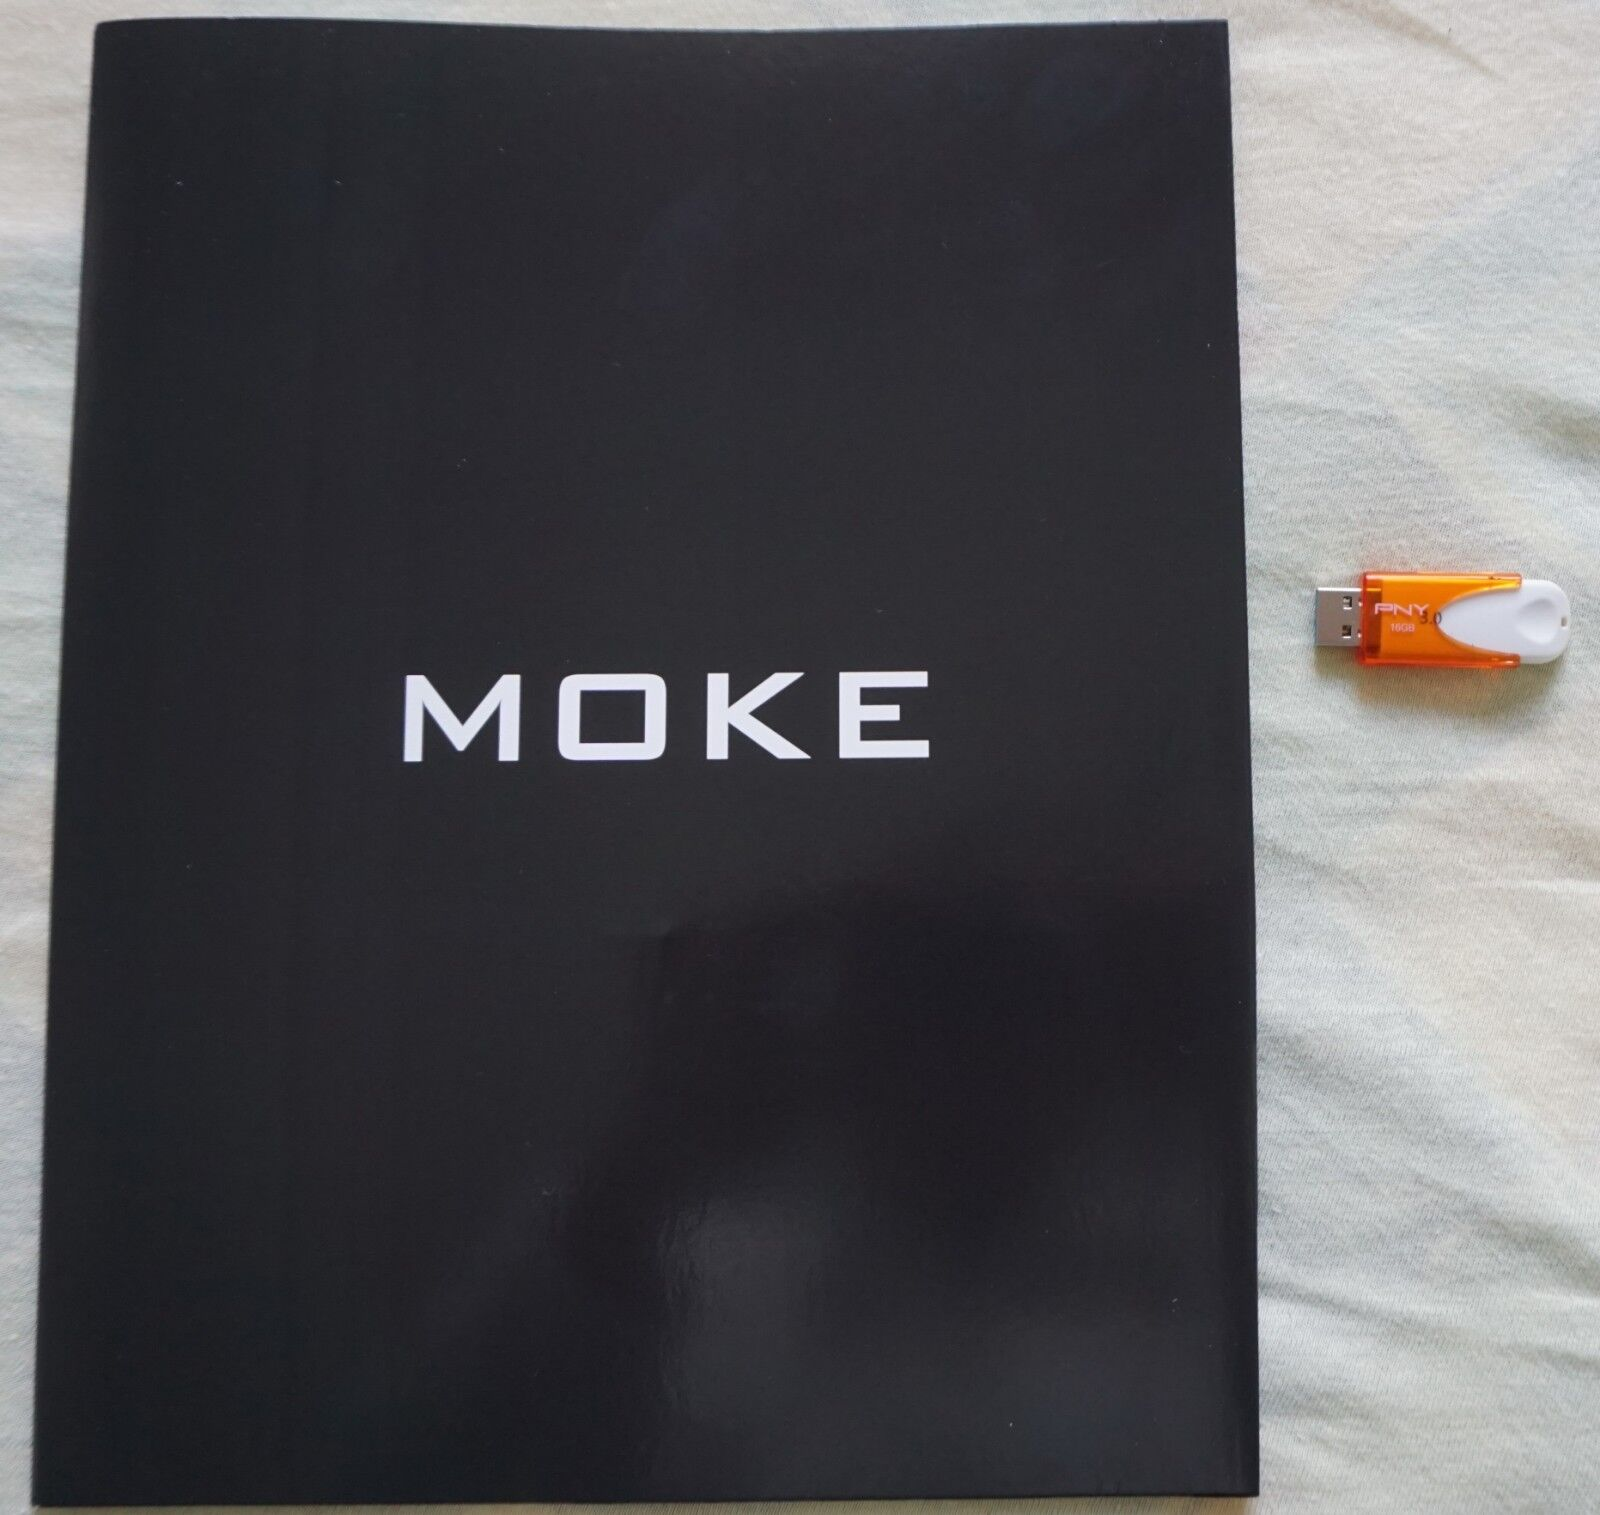 Moke & E-Moke car range (made in France) _Paris Show 2018_Pressemappe / Presskit